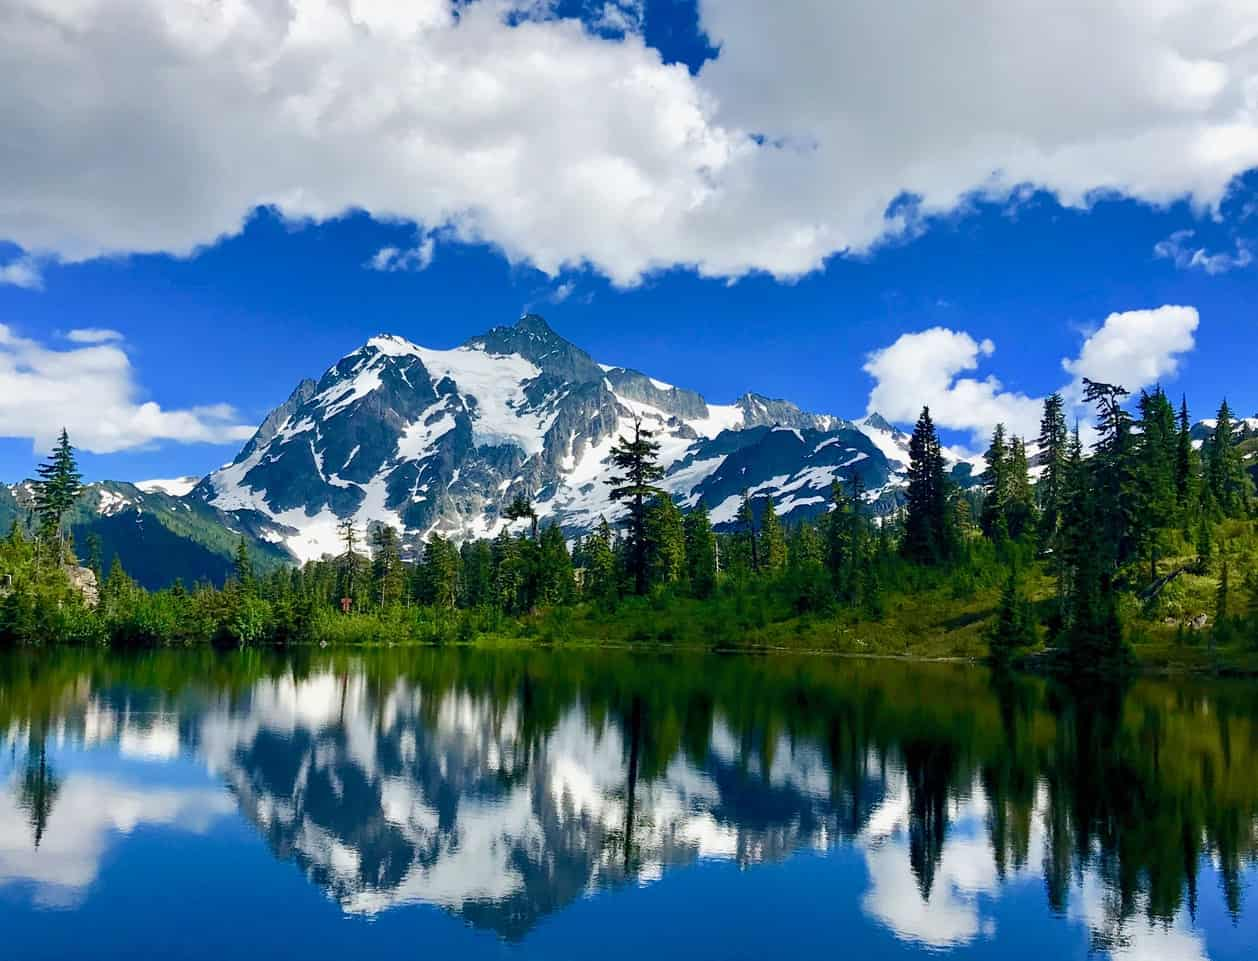 Mount Shuksan reflects in Picture Lake at Mount Baker